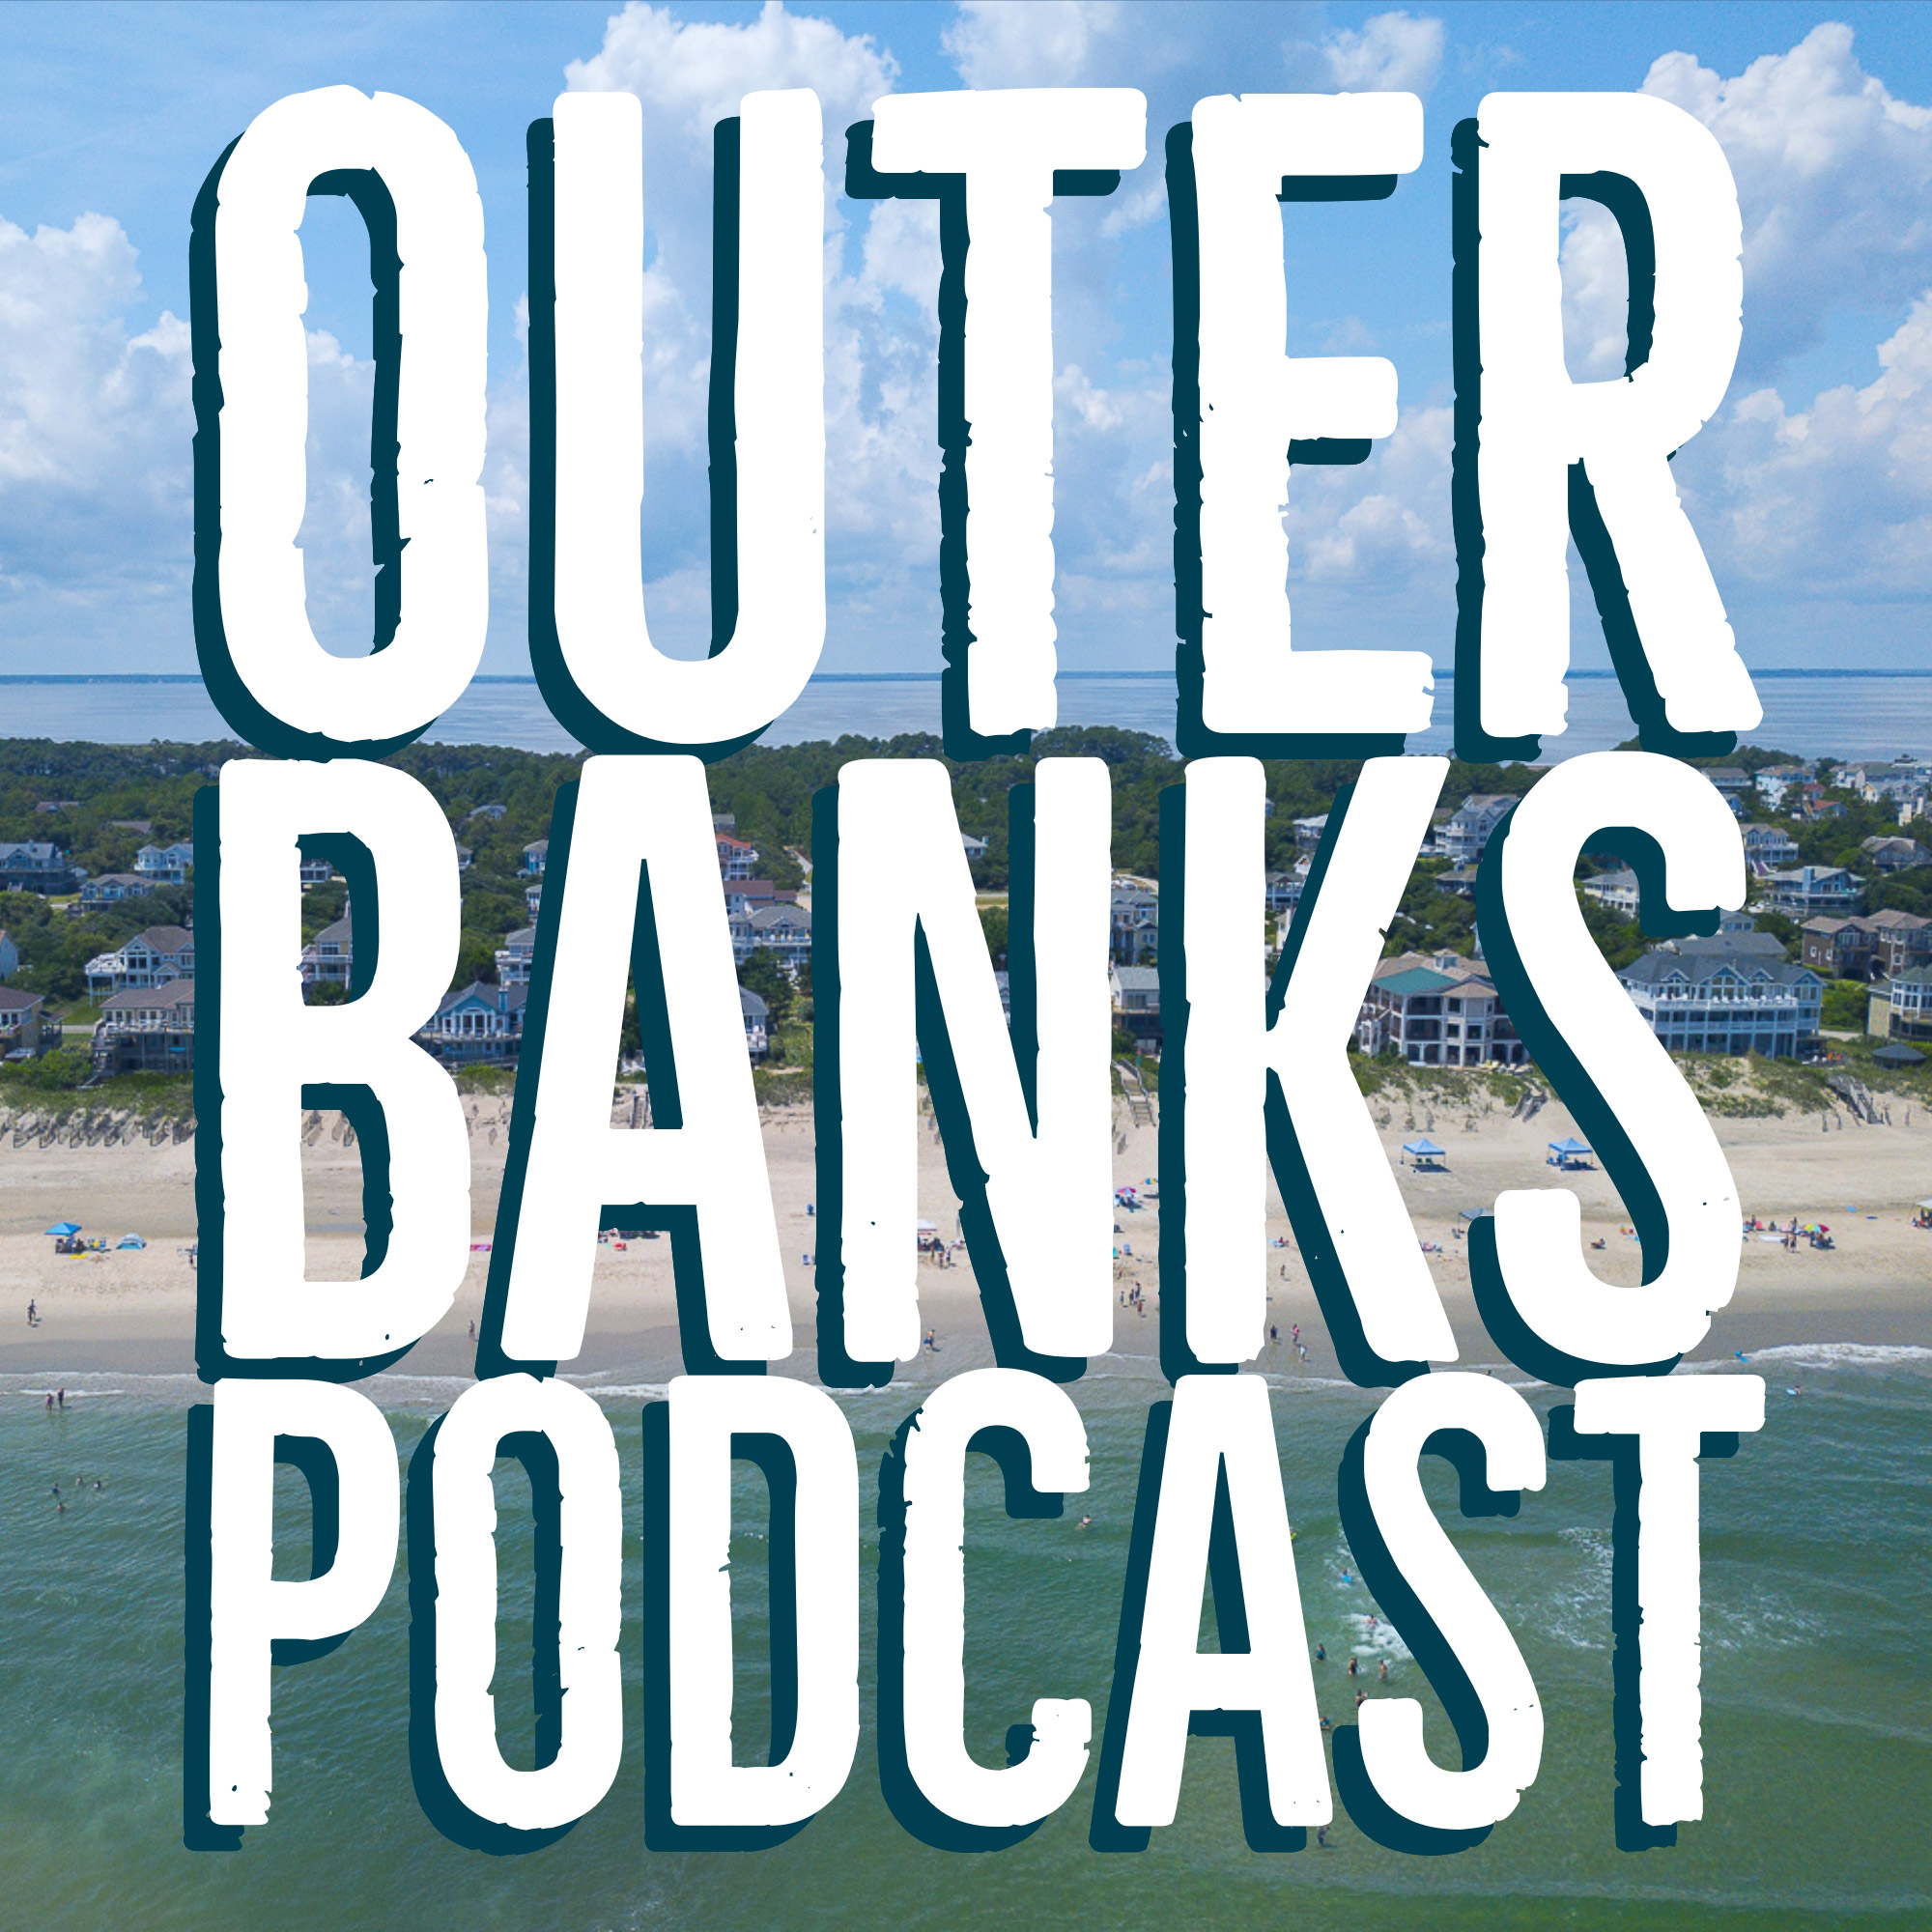 Outer Banks Podcast - Presented By Seaside Vacations